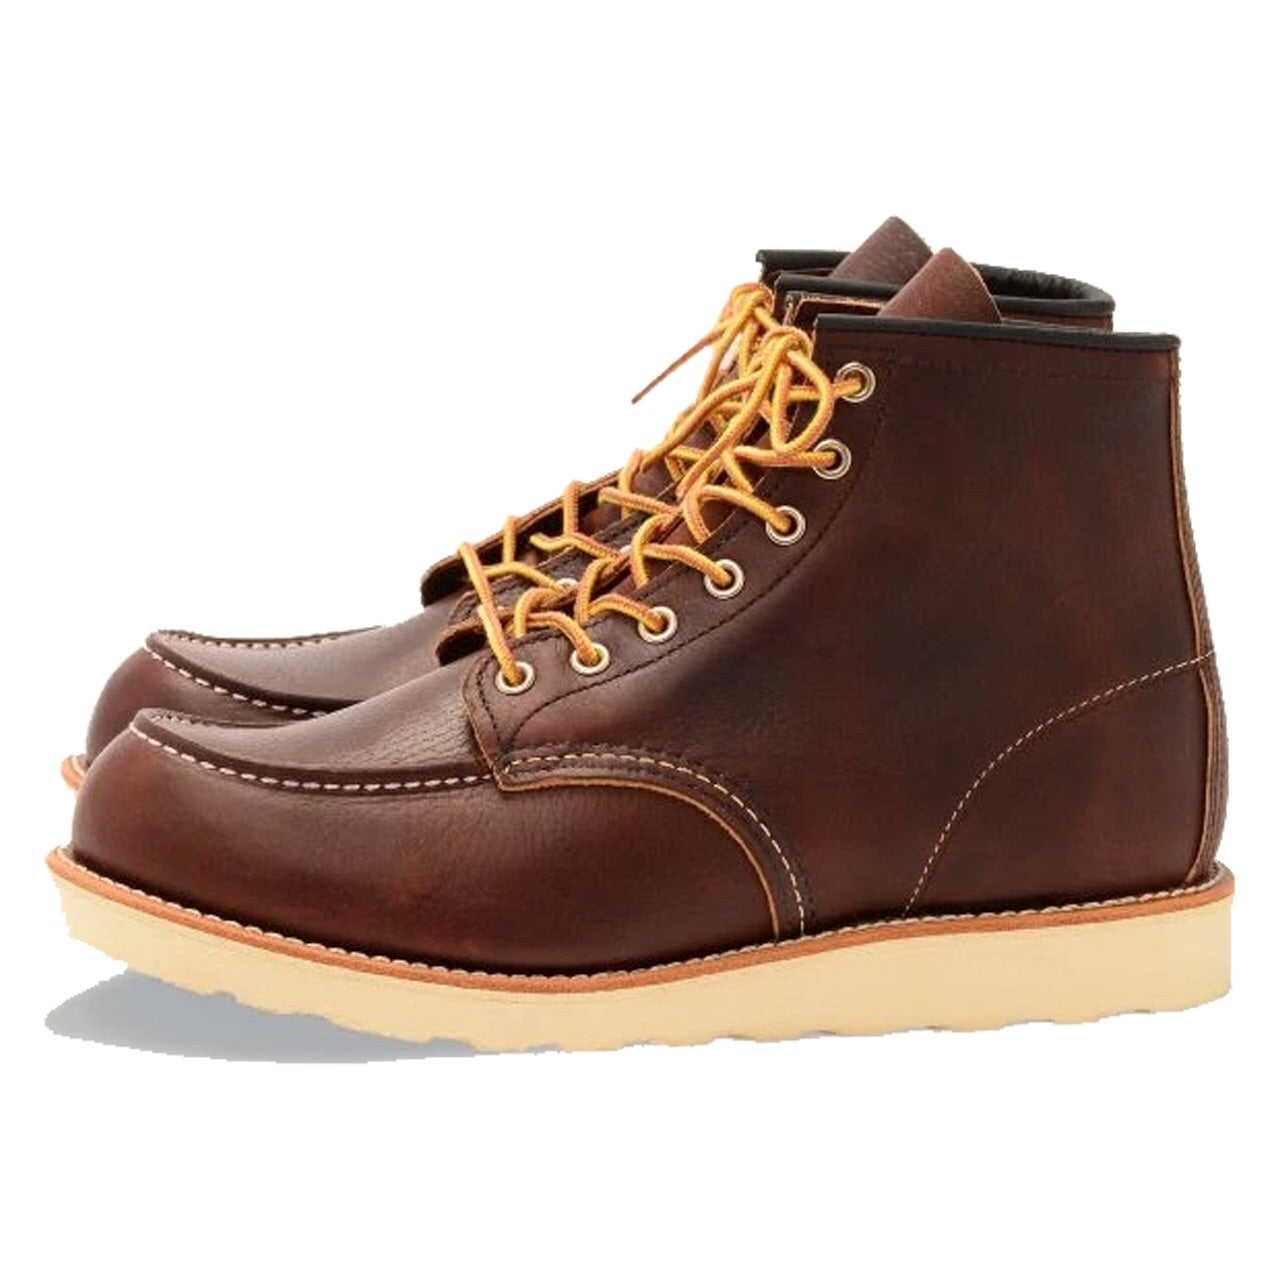 RED WING CLASSIC MOC STYLE NO. 8138 BROWN LEATHER